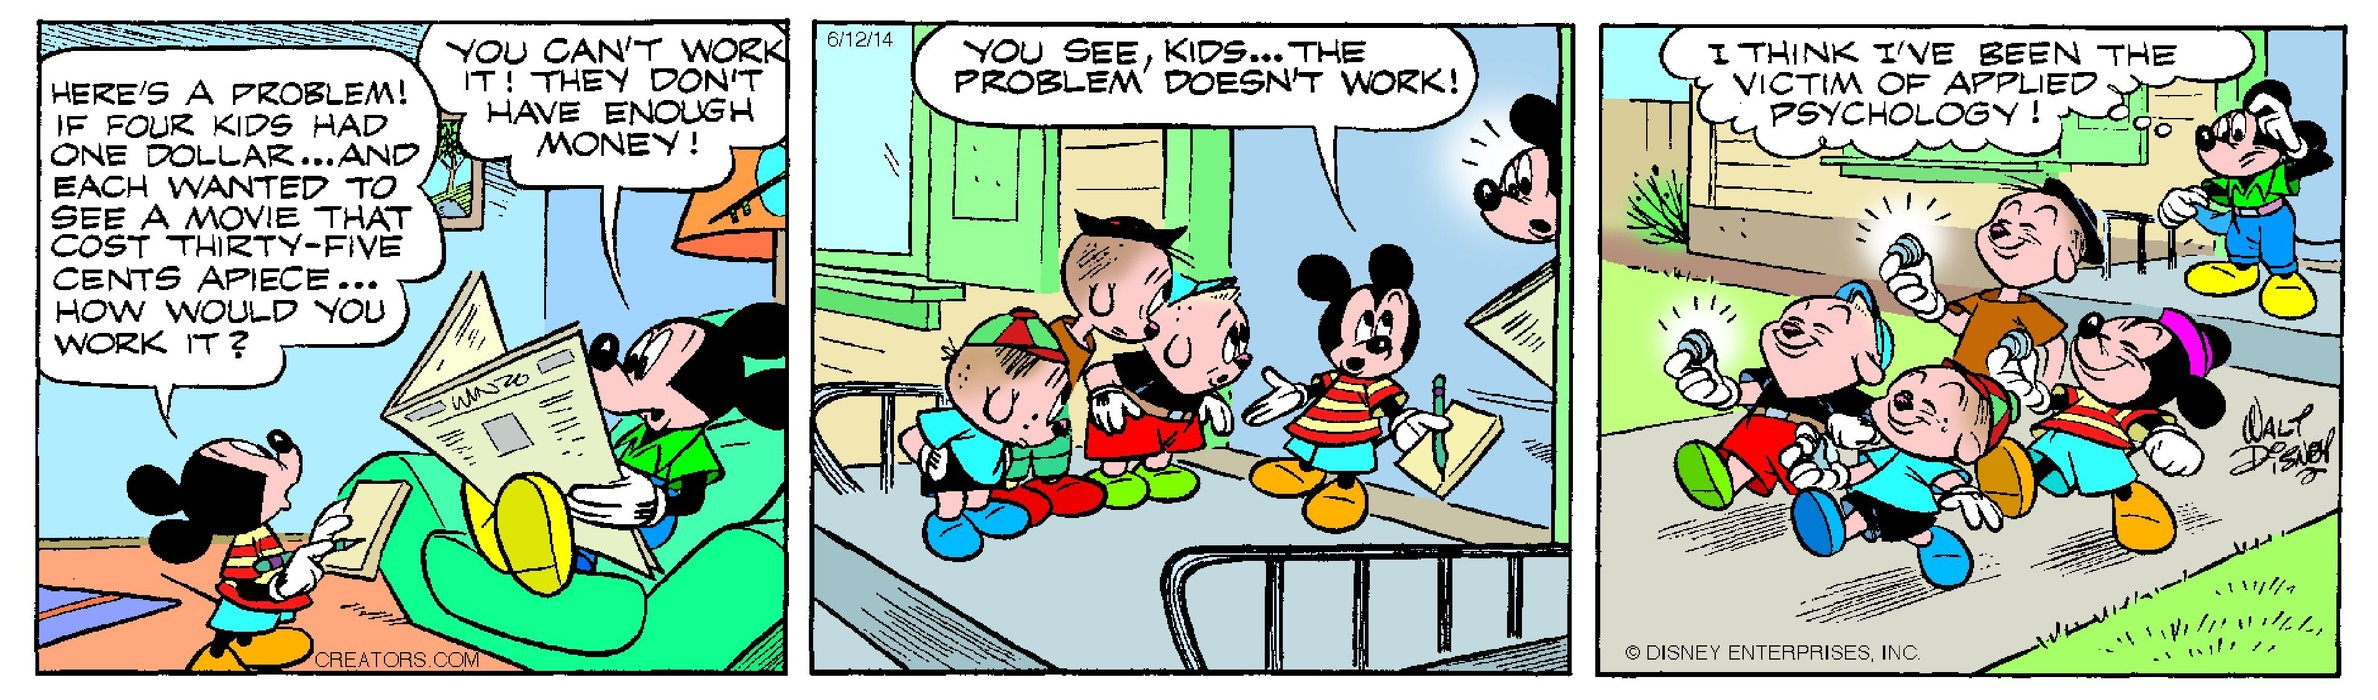 Mickey Mouse for Jun 12, 2014